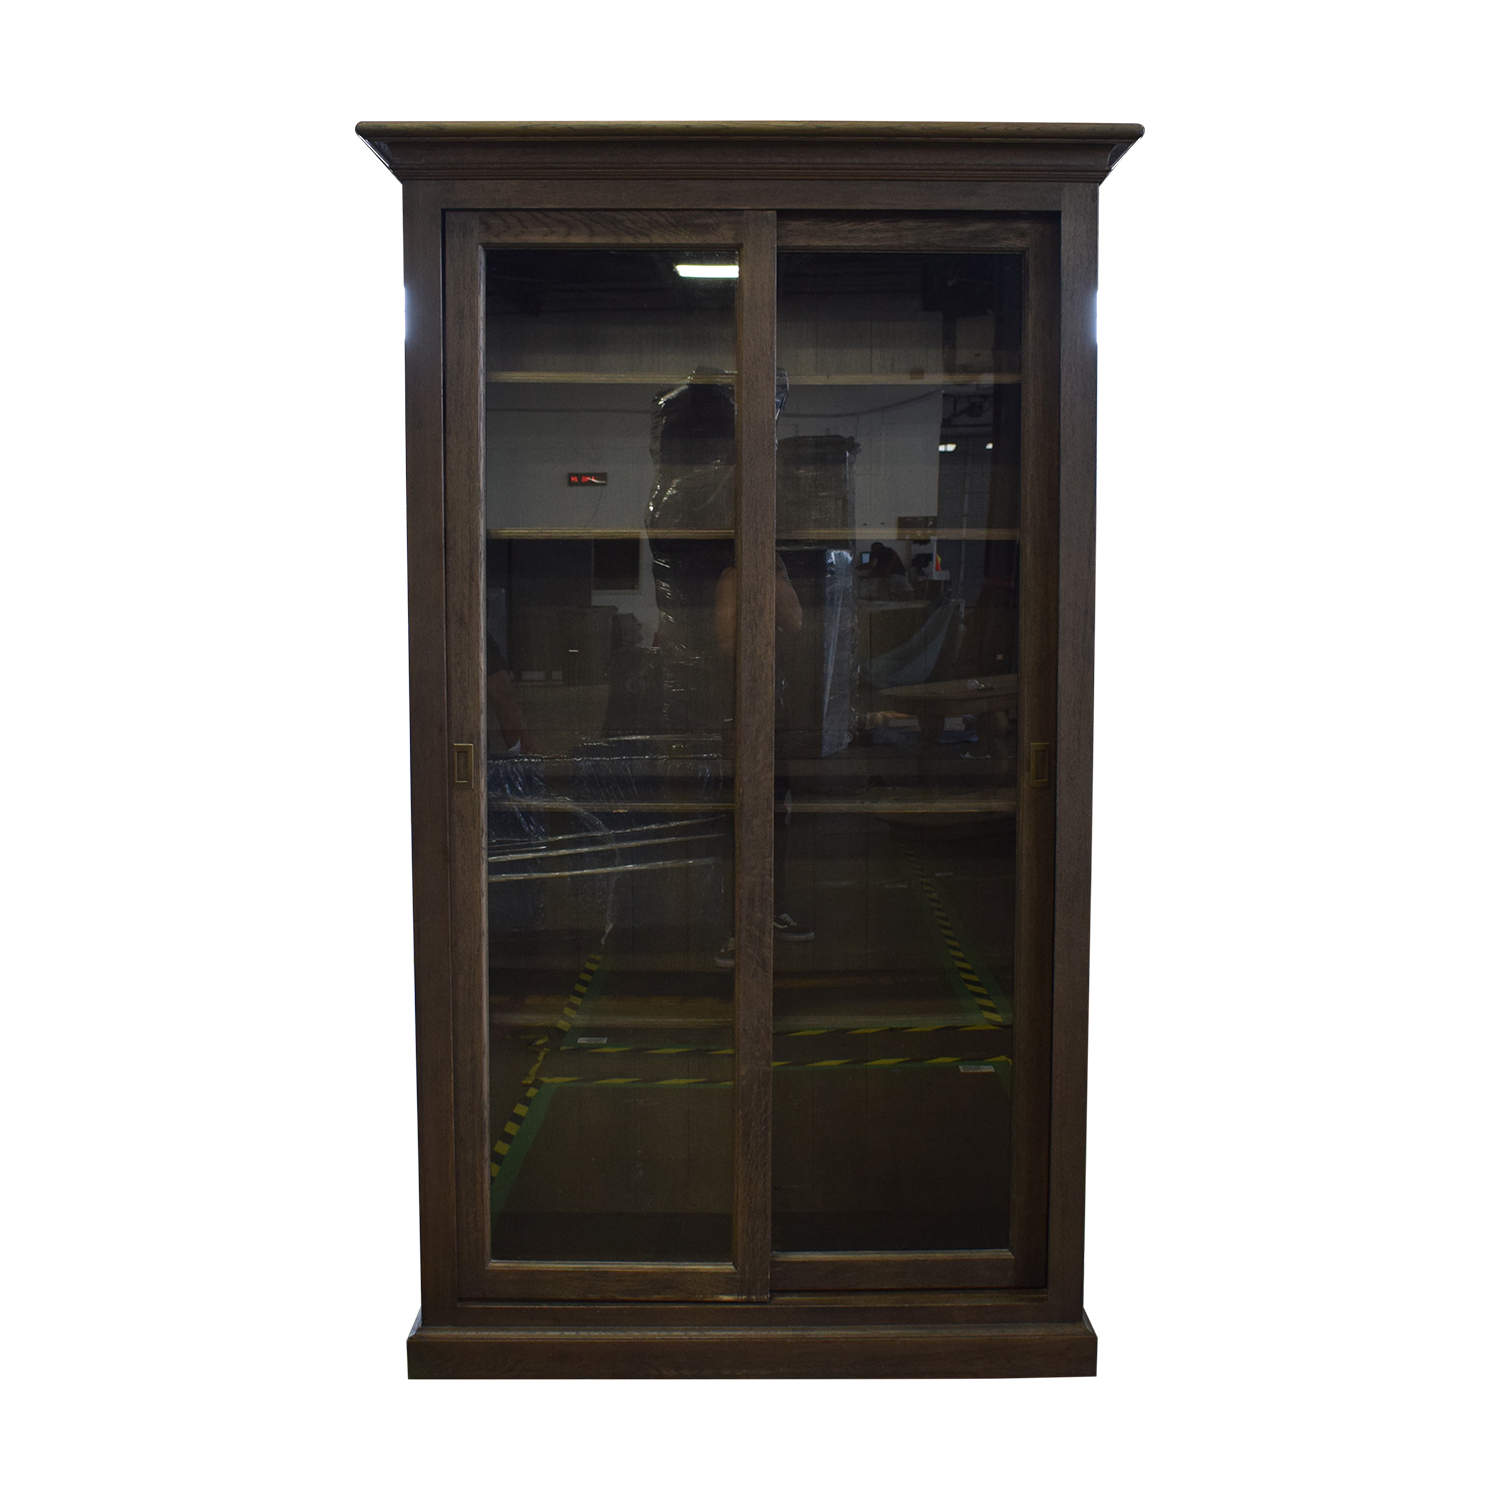 Restoration Hardware Restoration Hardware 20th C. English Brass Bar Slider  Glass Double Door Cabinet